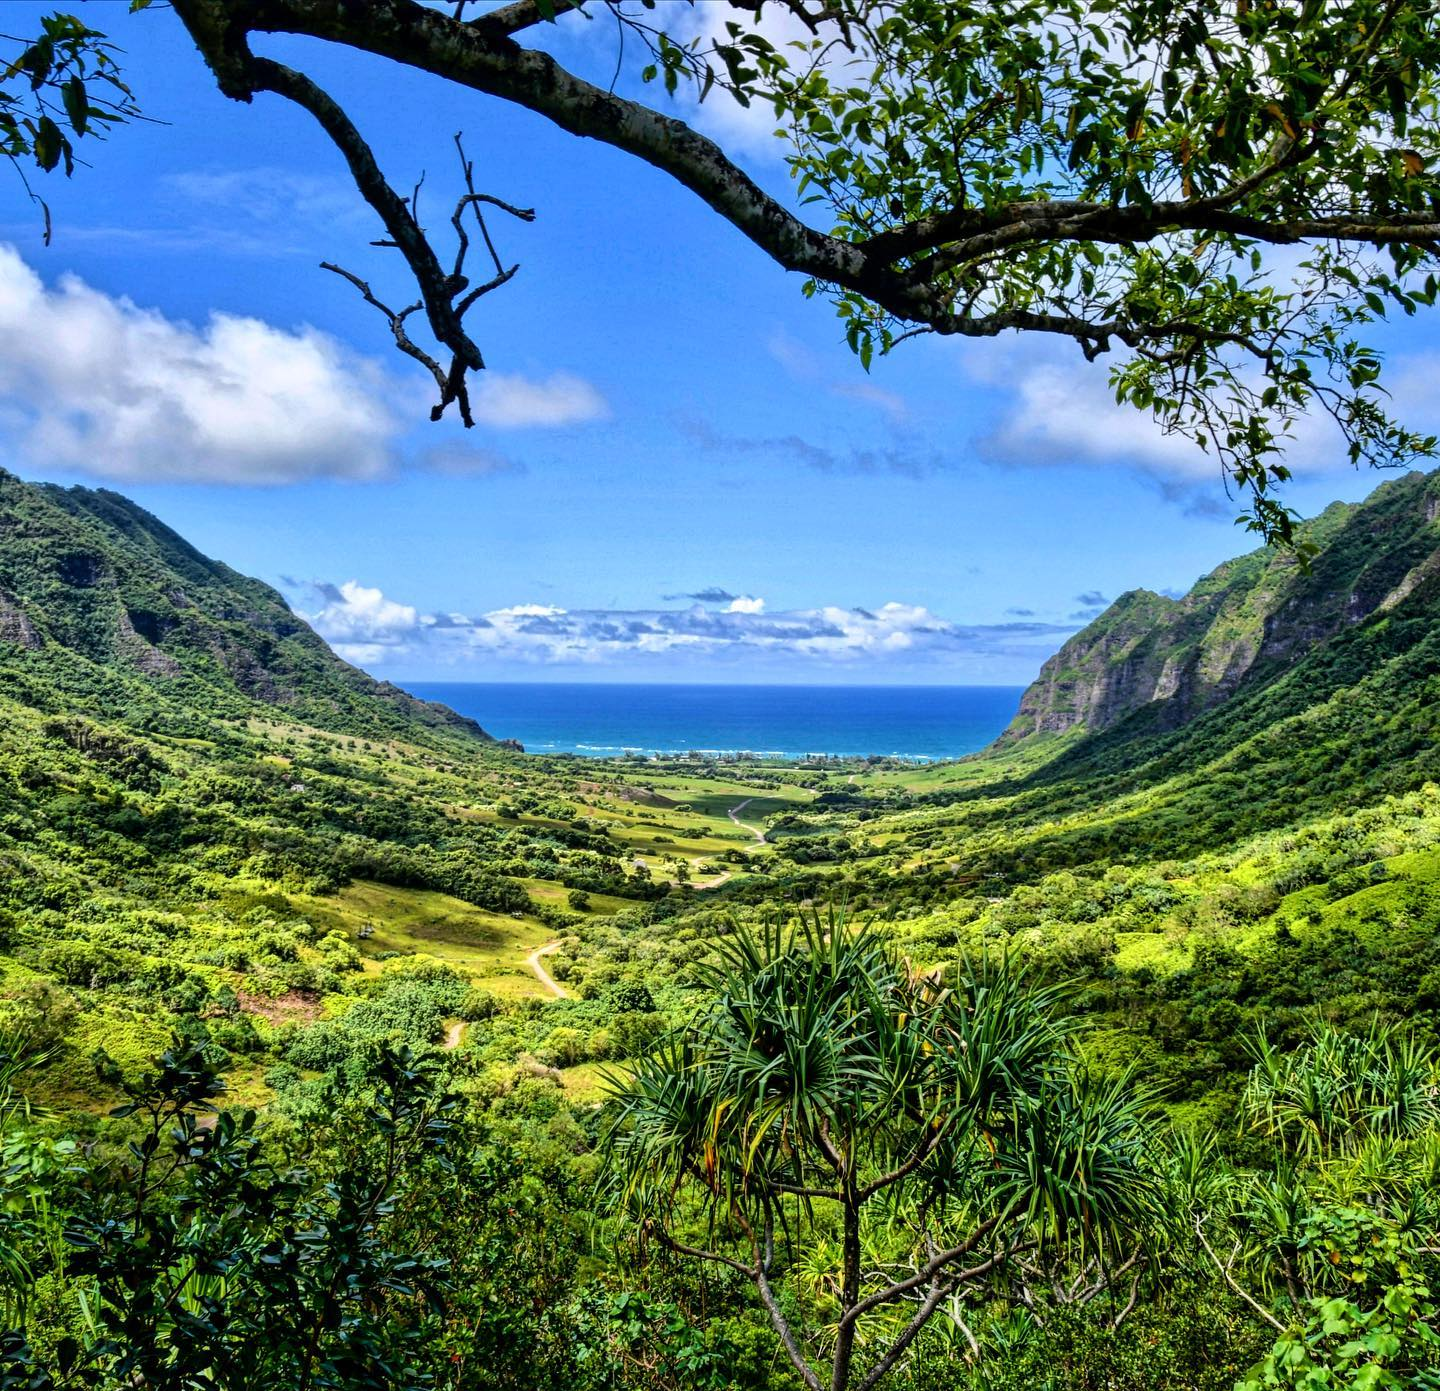 Ka'a'awa Valley, Oahu, Hawaii This view, just wowing😍😍😍  #usa #usatravel #usatravels #hawaiitrip #hawaiitravel #hawaiiviews #hawaiilove #hawaiivibes #hawaiivacation #oahu #oahuhawaii #nature #traveltherenext #naturephotography #naturelovers #naturfotografie #travelphotography #travelpics #kaaawavalley #america #view #greenandblue #travelcouples #travelstoke #usaliebe #nature_perfection #beautifuldestinations #beautifulnature #traveltheglobe #instatravel